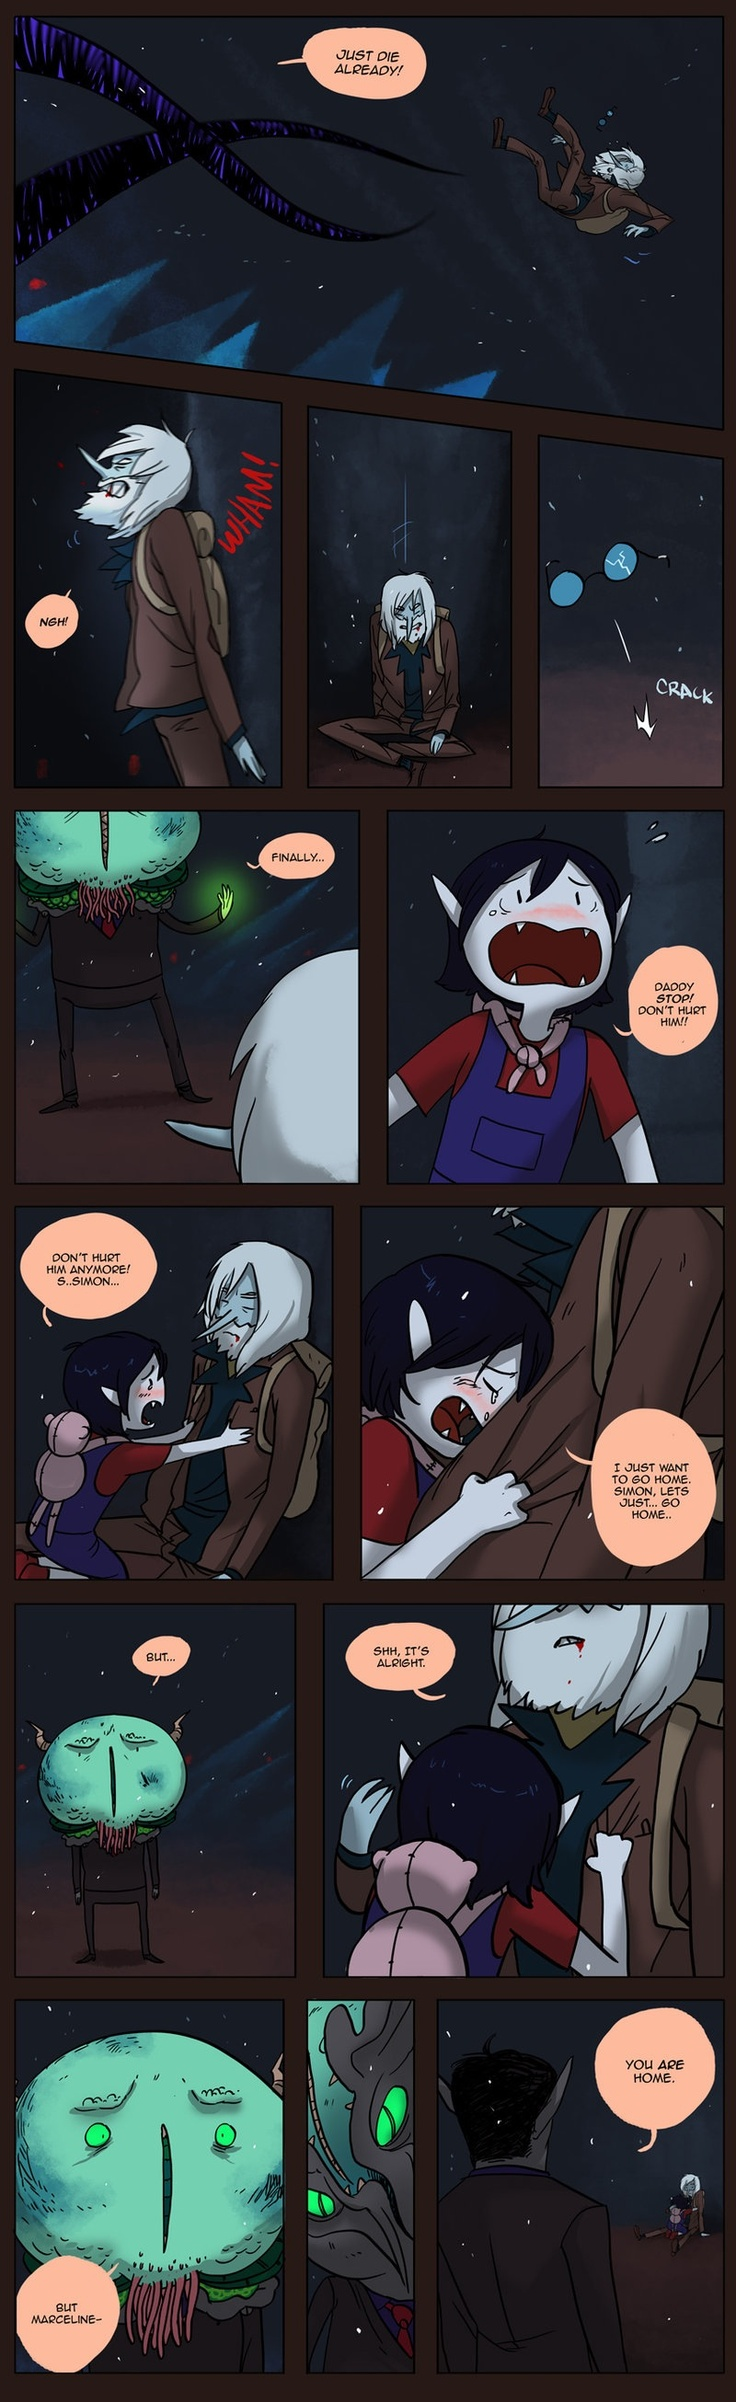 Cartoon Network Hentai Comics Cool 28 best fionna and cake/adventure time images on pinterest